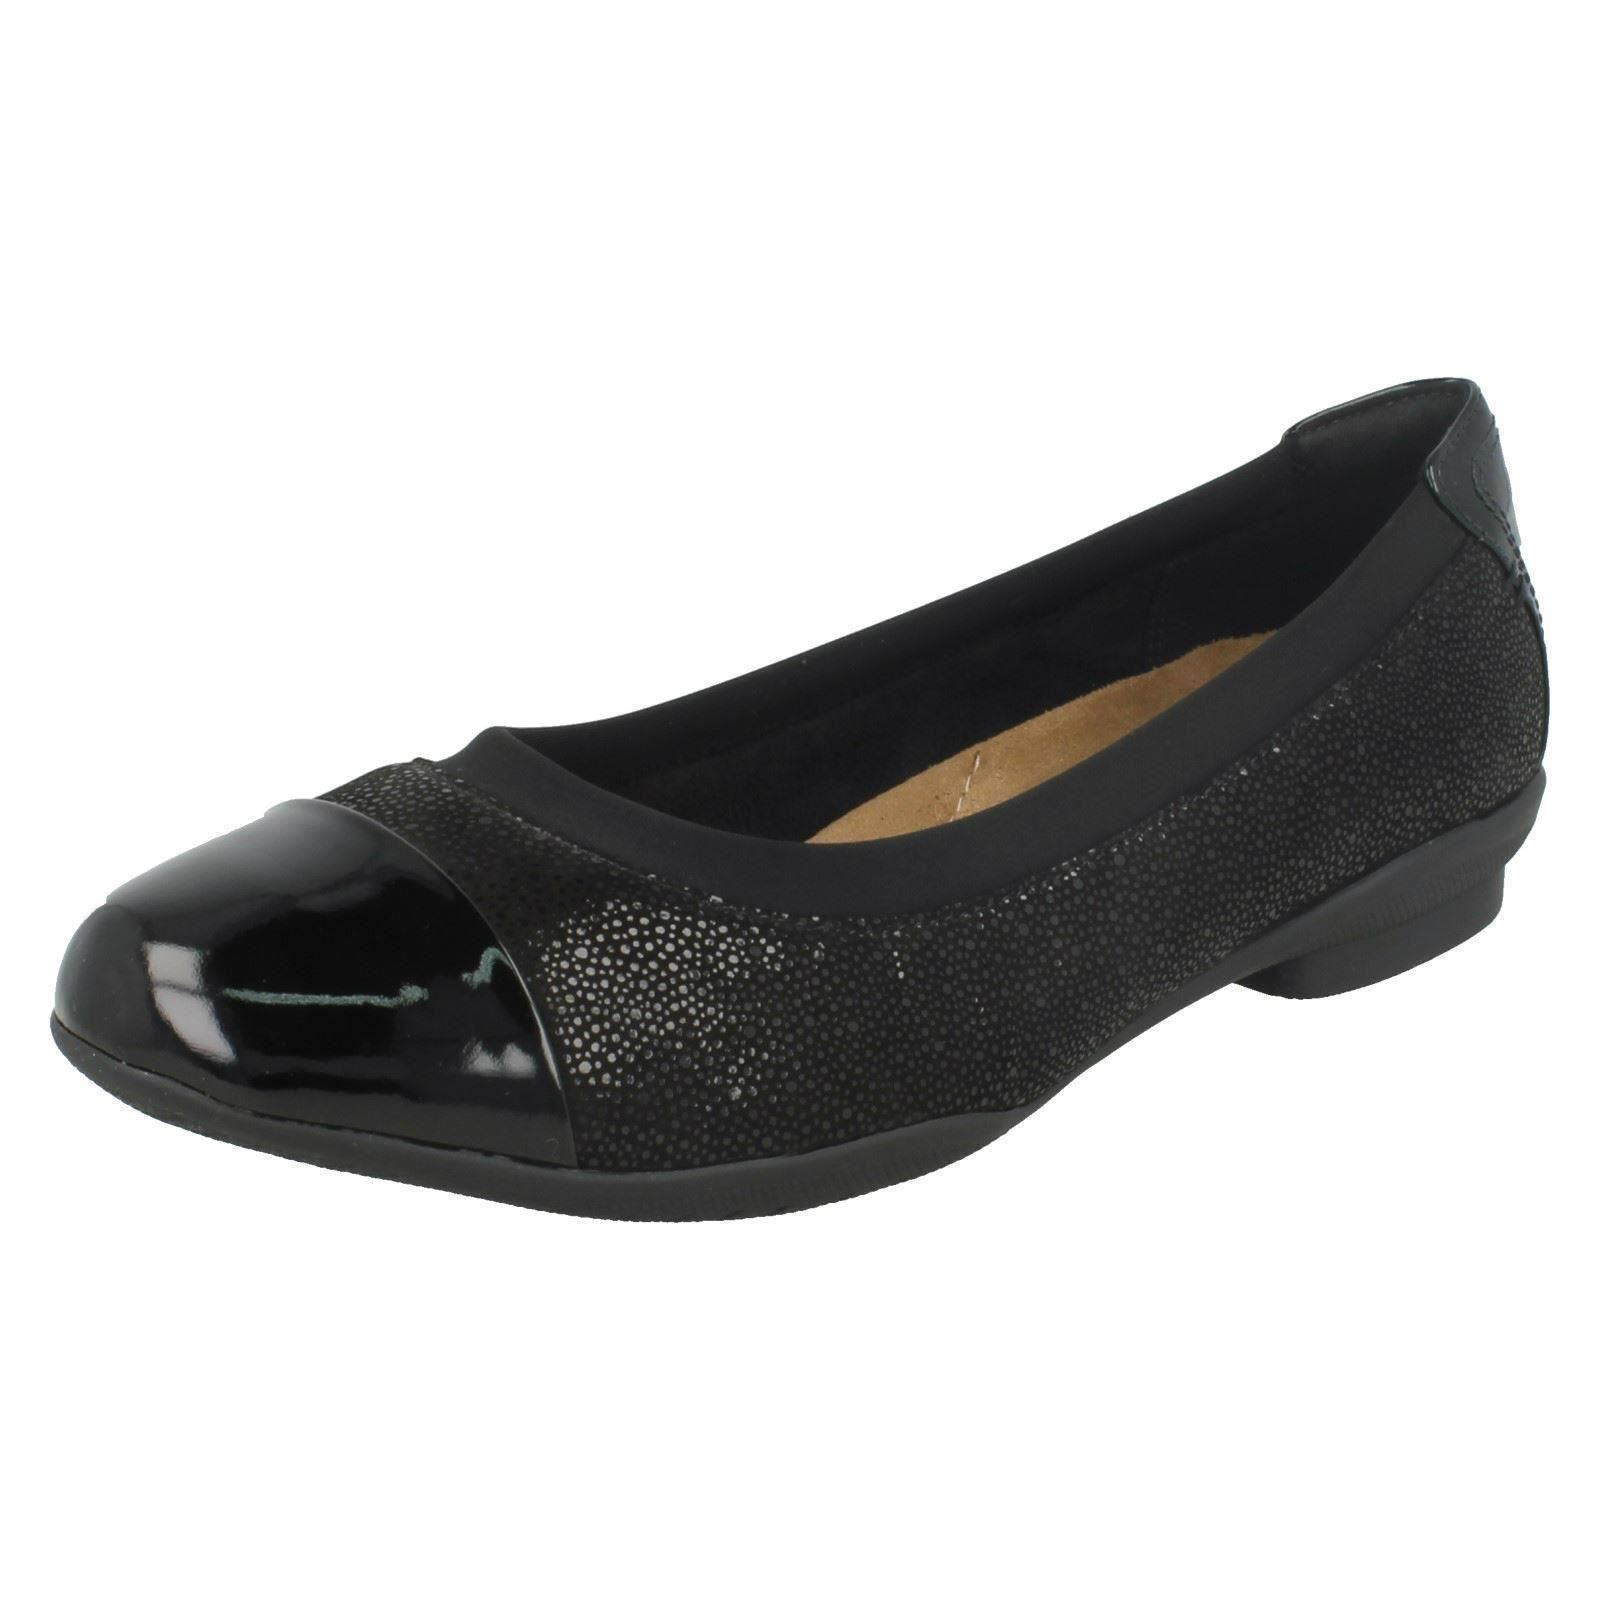 e9a780f4f209 Clarks Neenah Garden Womens Wide Ballet PUMPS Black 3.5. About this  product. Picture 1 of 8  Picture 2 of 8 ...